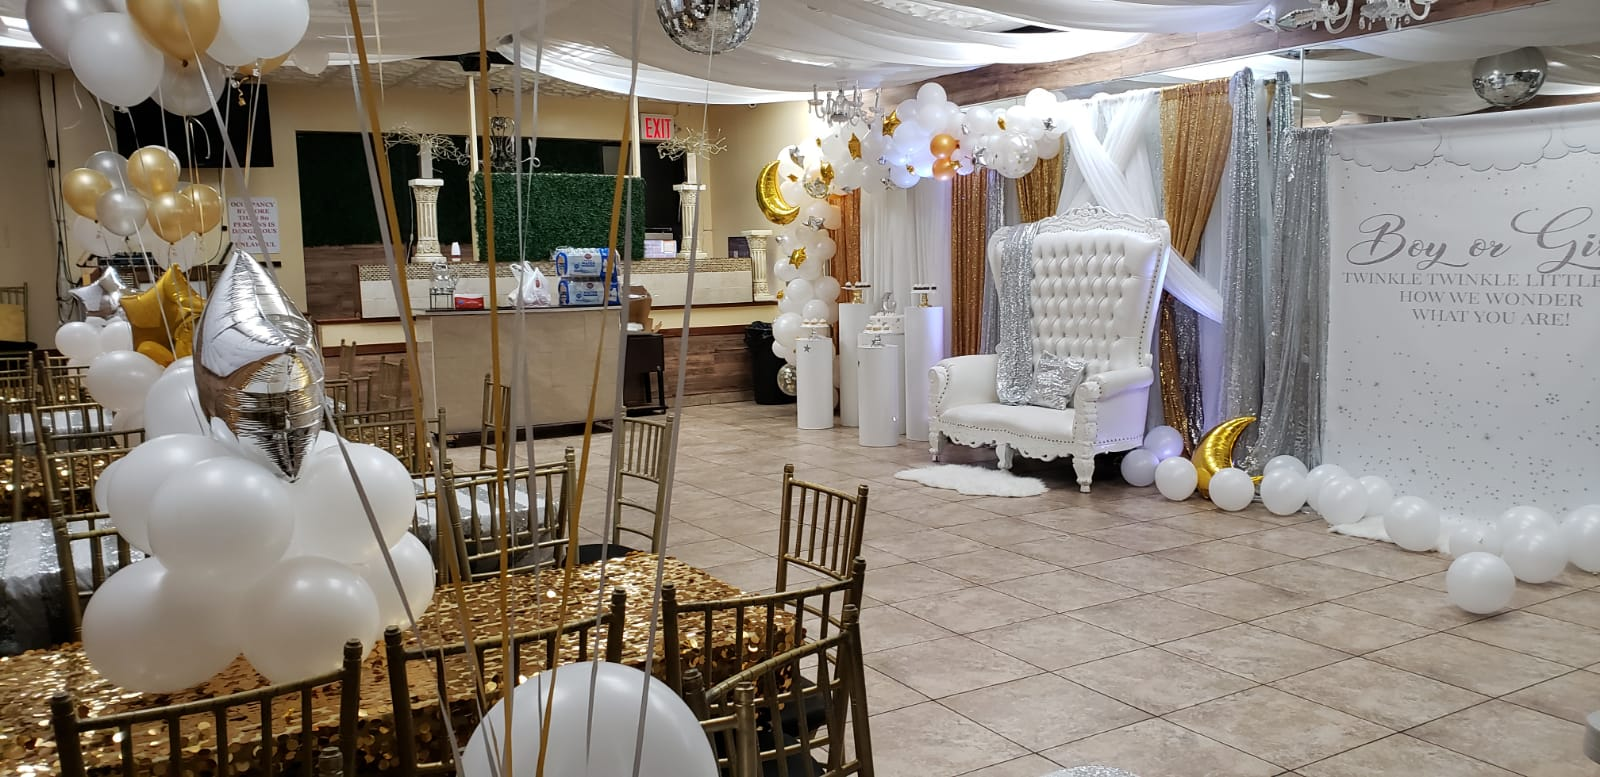 Baby Shower Party Venues Occasions Hall Call Or Text 347 640 4255 Occasions Hall Call Or Text 347 640 4255